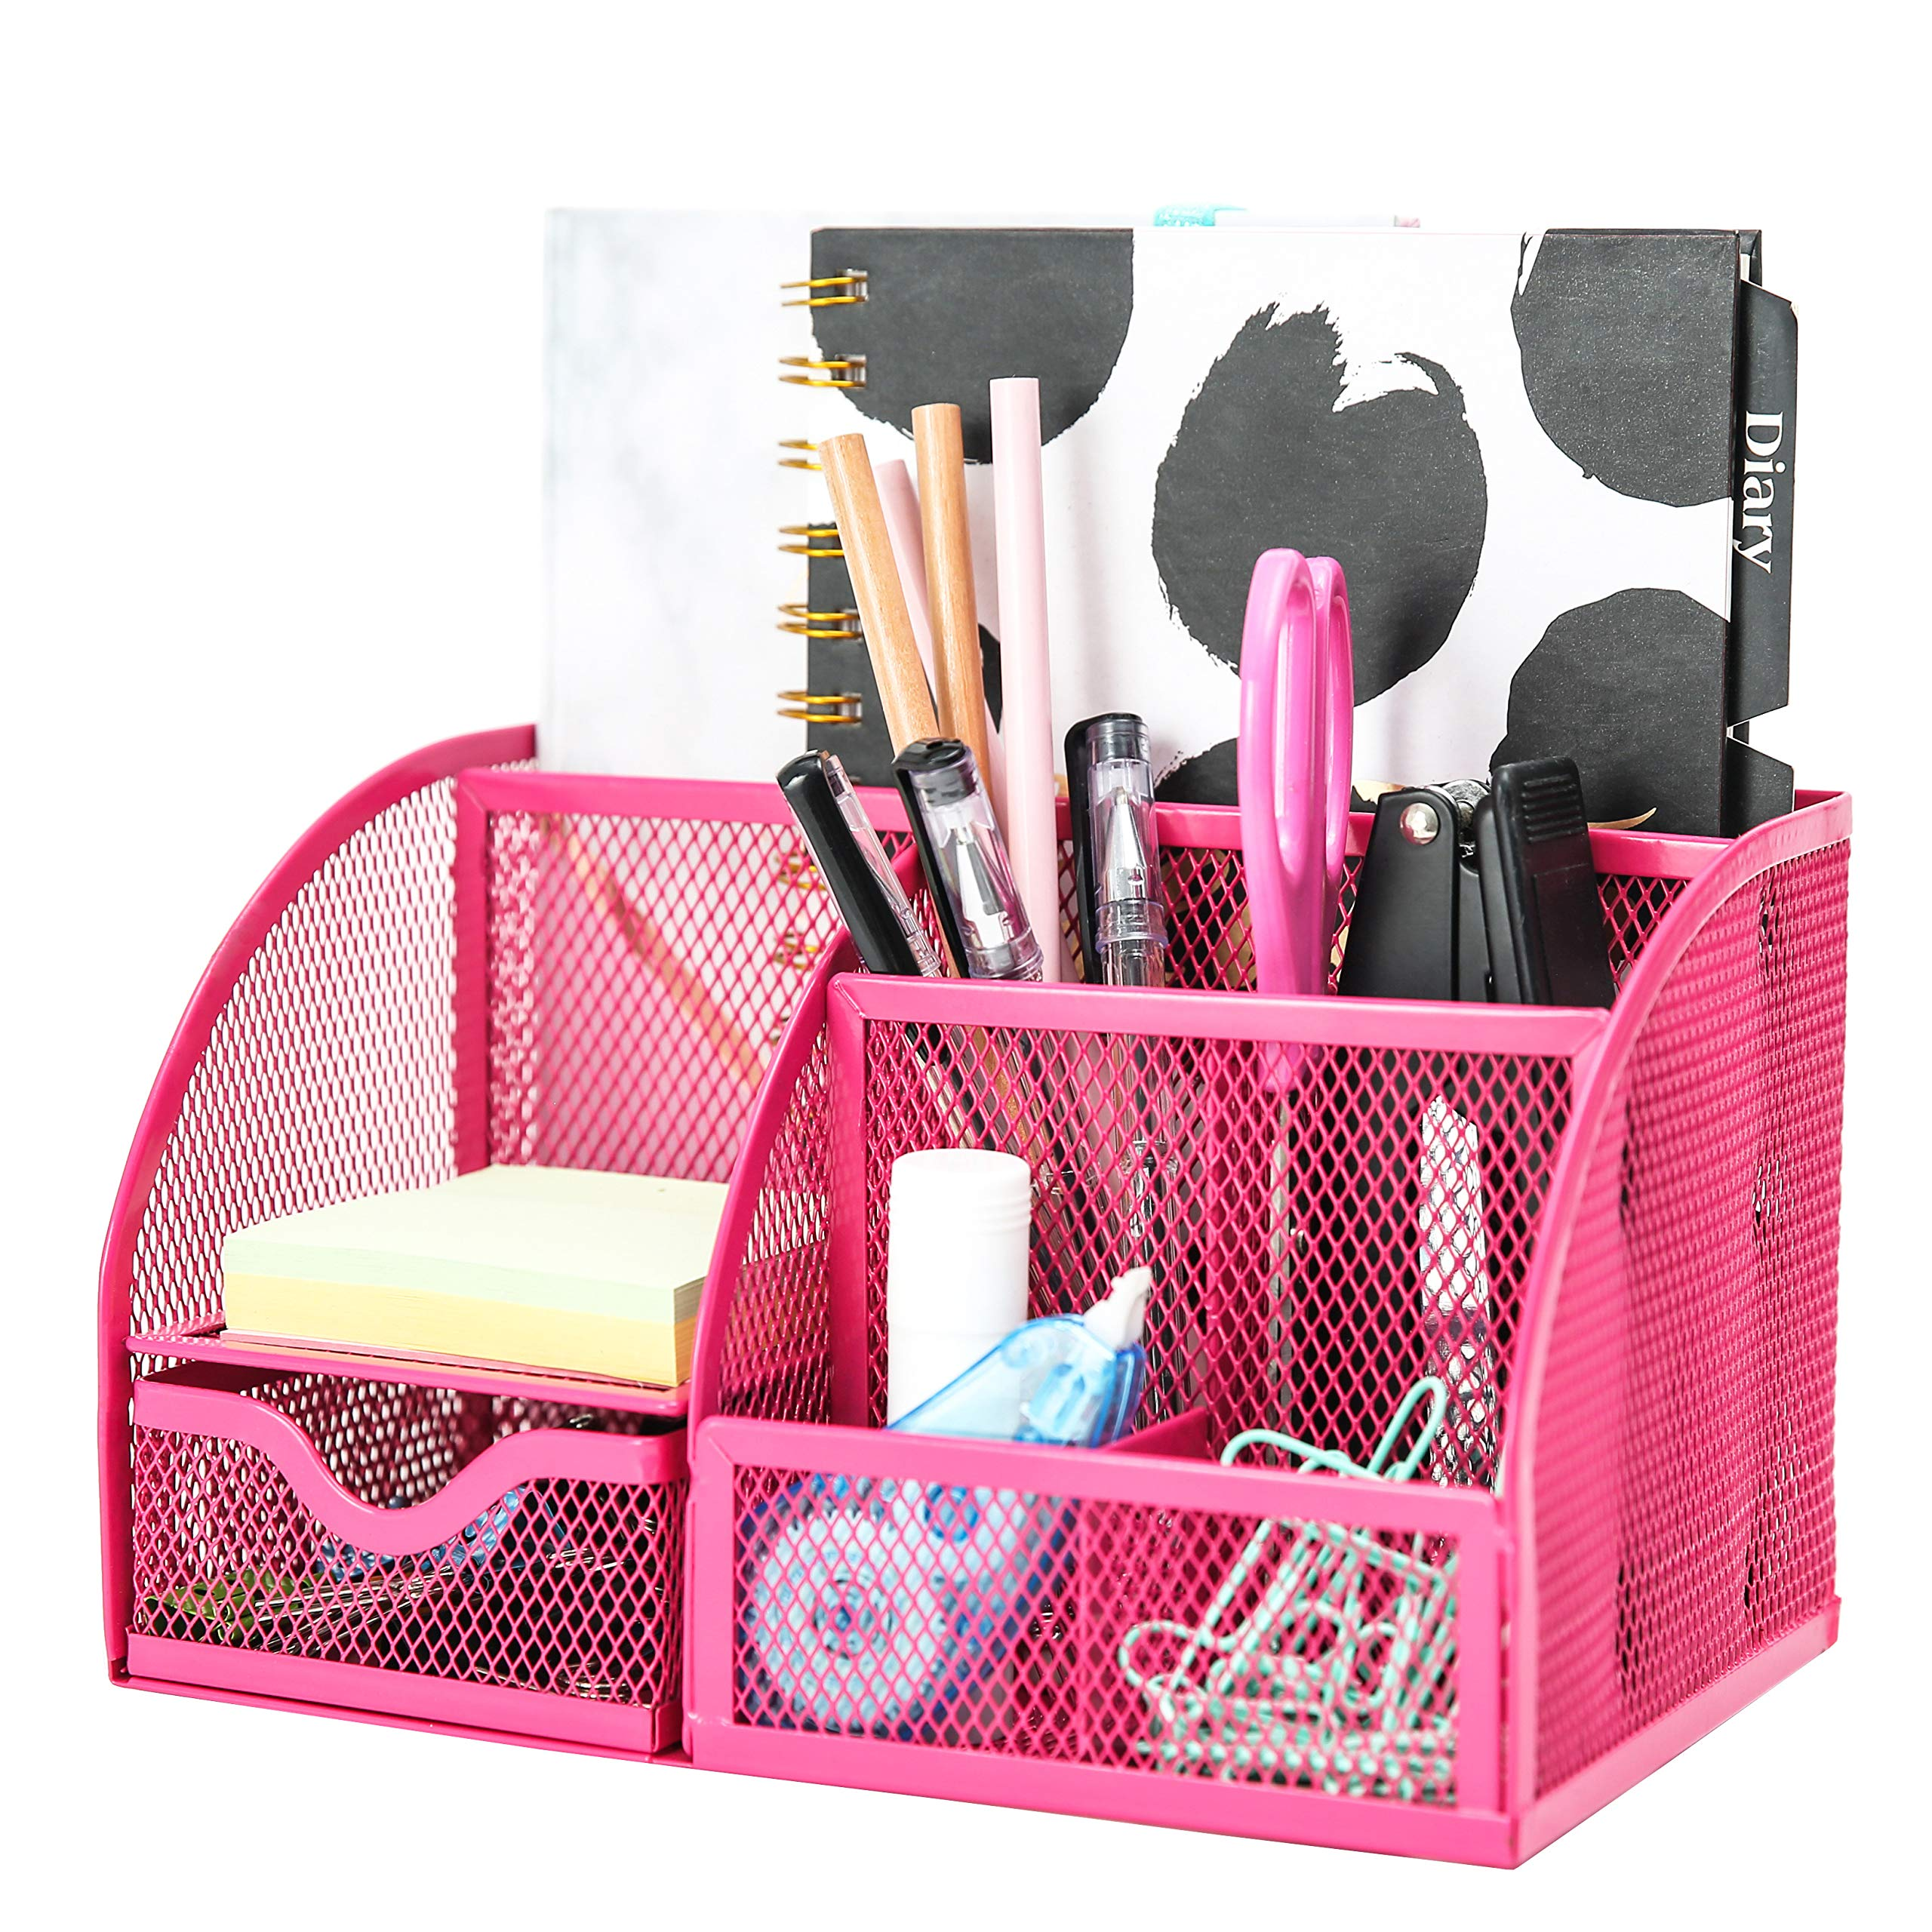 Exerz Mesh Desk Organizer Office with 7 Compartments + Drawer/Desk Tidy Candy/Pen Holder/Multifunctional Organizer EX348 Pink